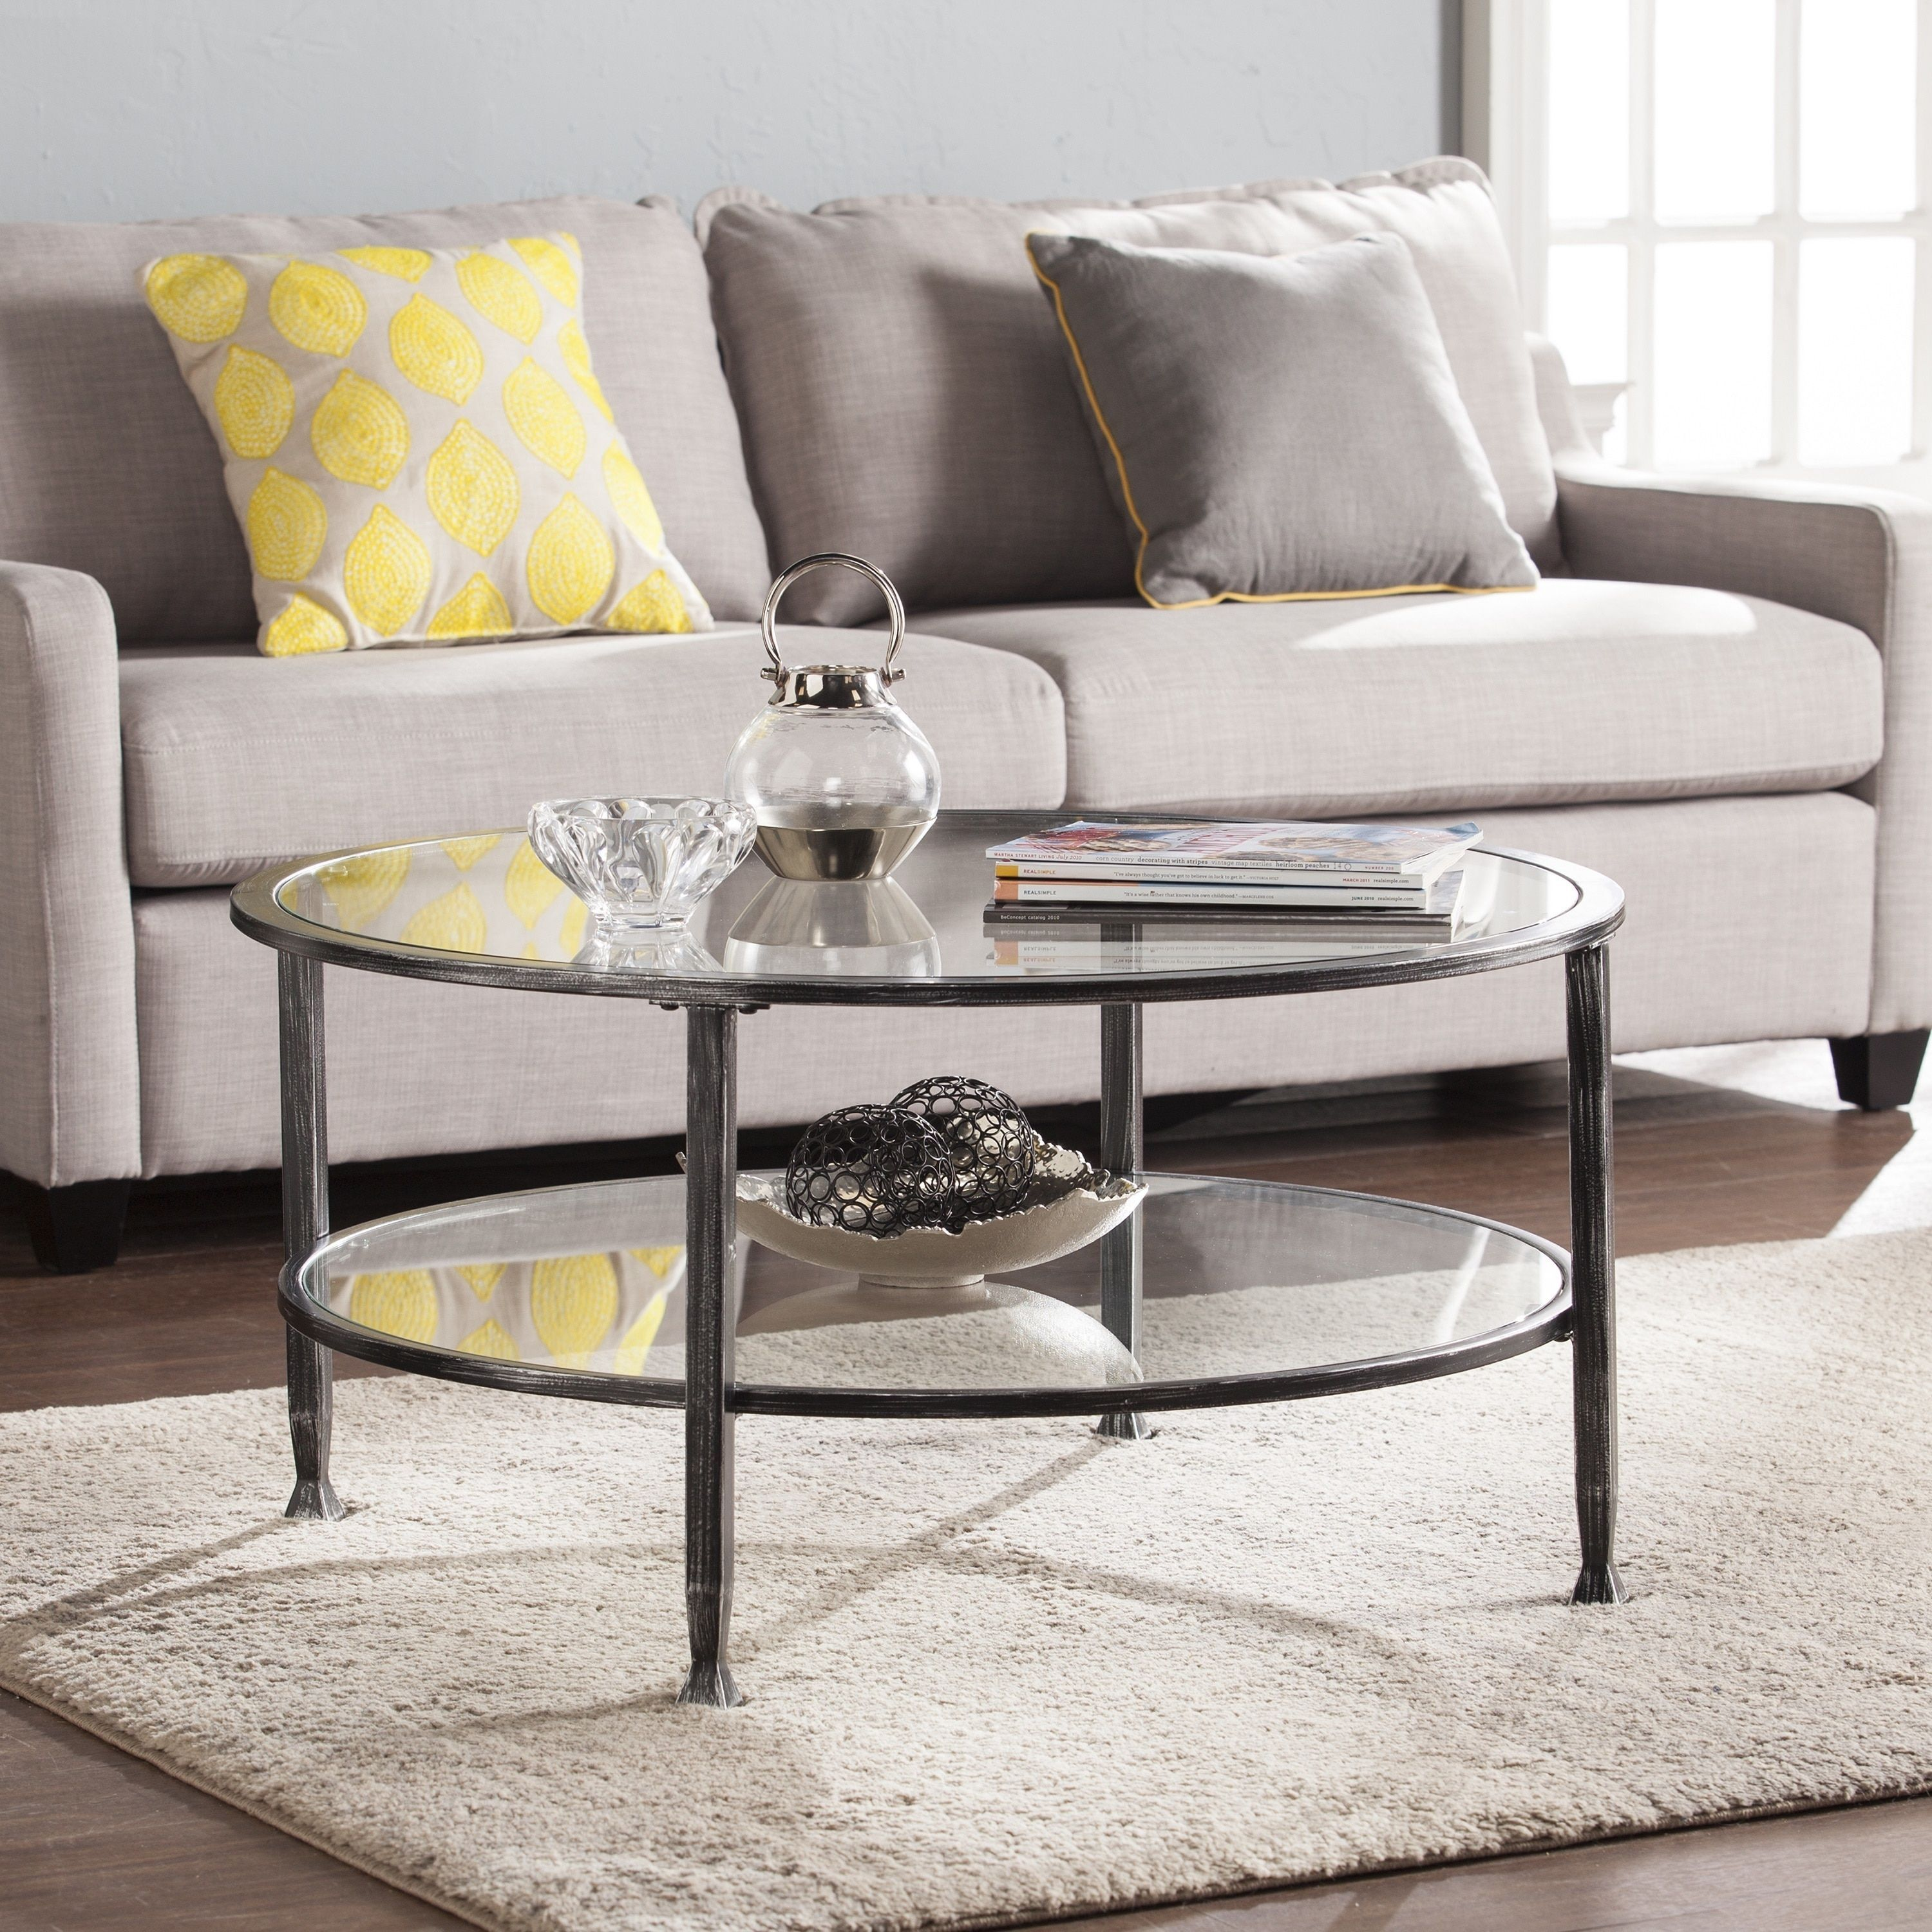 Overstock Com Online Shopping Bedding Furniture Electronics Jewelry Clothing More Living Room Coffee Table Coffee Table Round Glass Coffee Table [ 3000 x 3000 Pixel ]